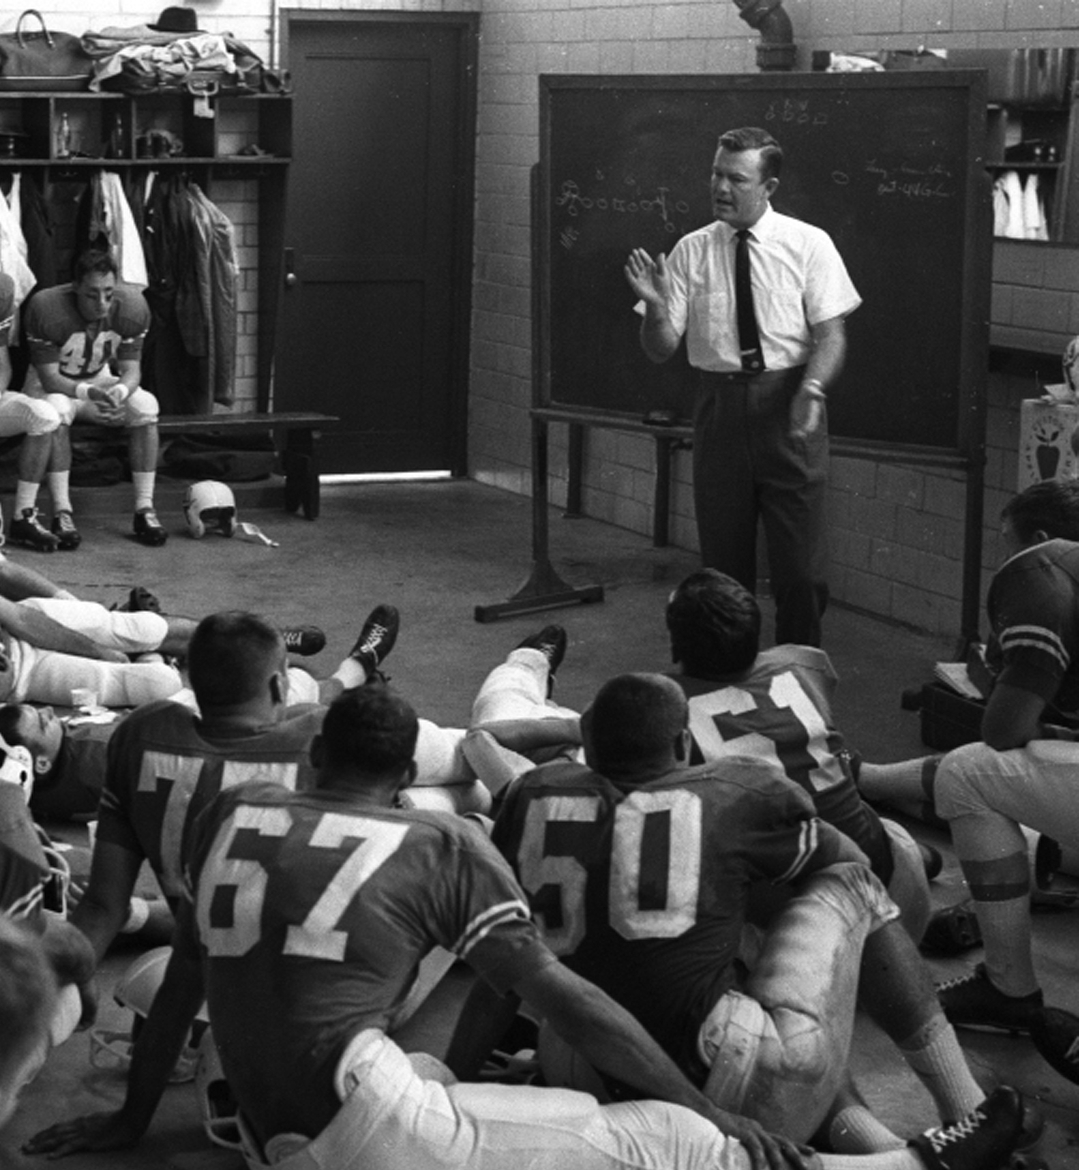 Chapter 48-8 Coach Royal address his players early 60s in Locker Room - 300px.jpg